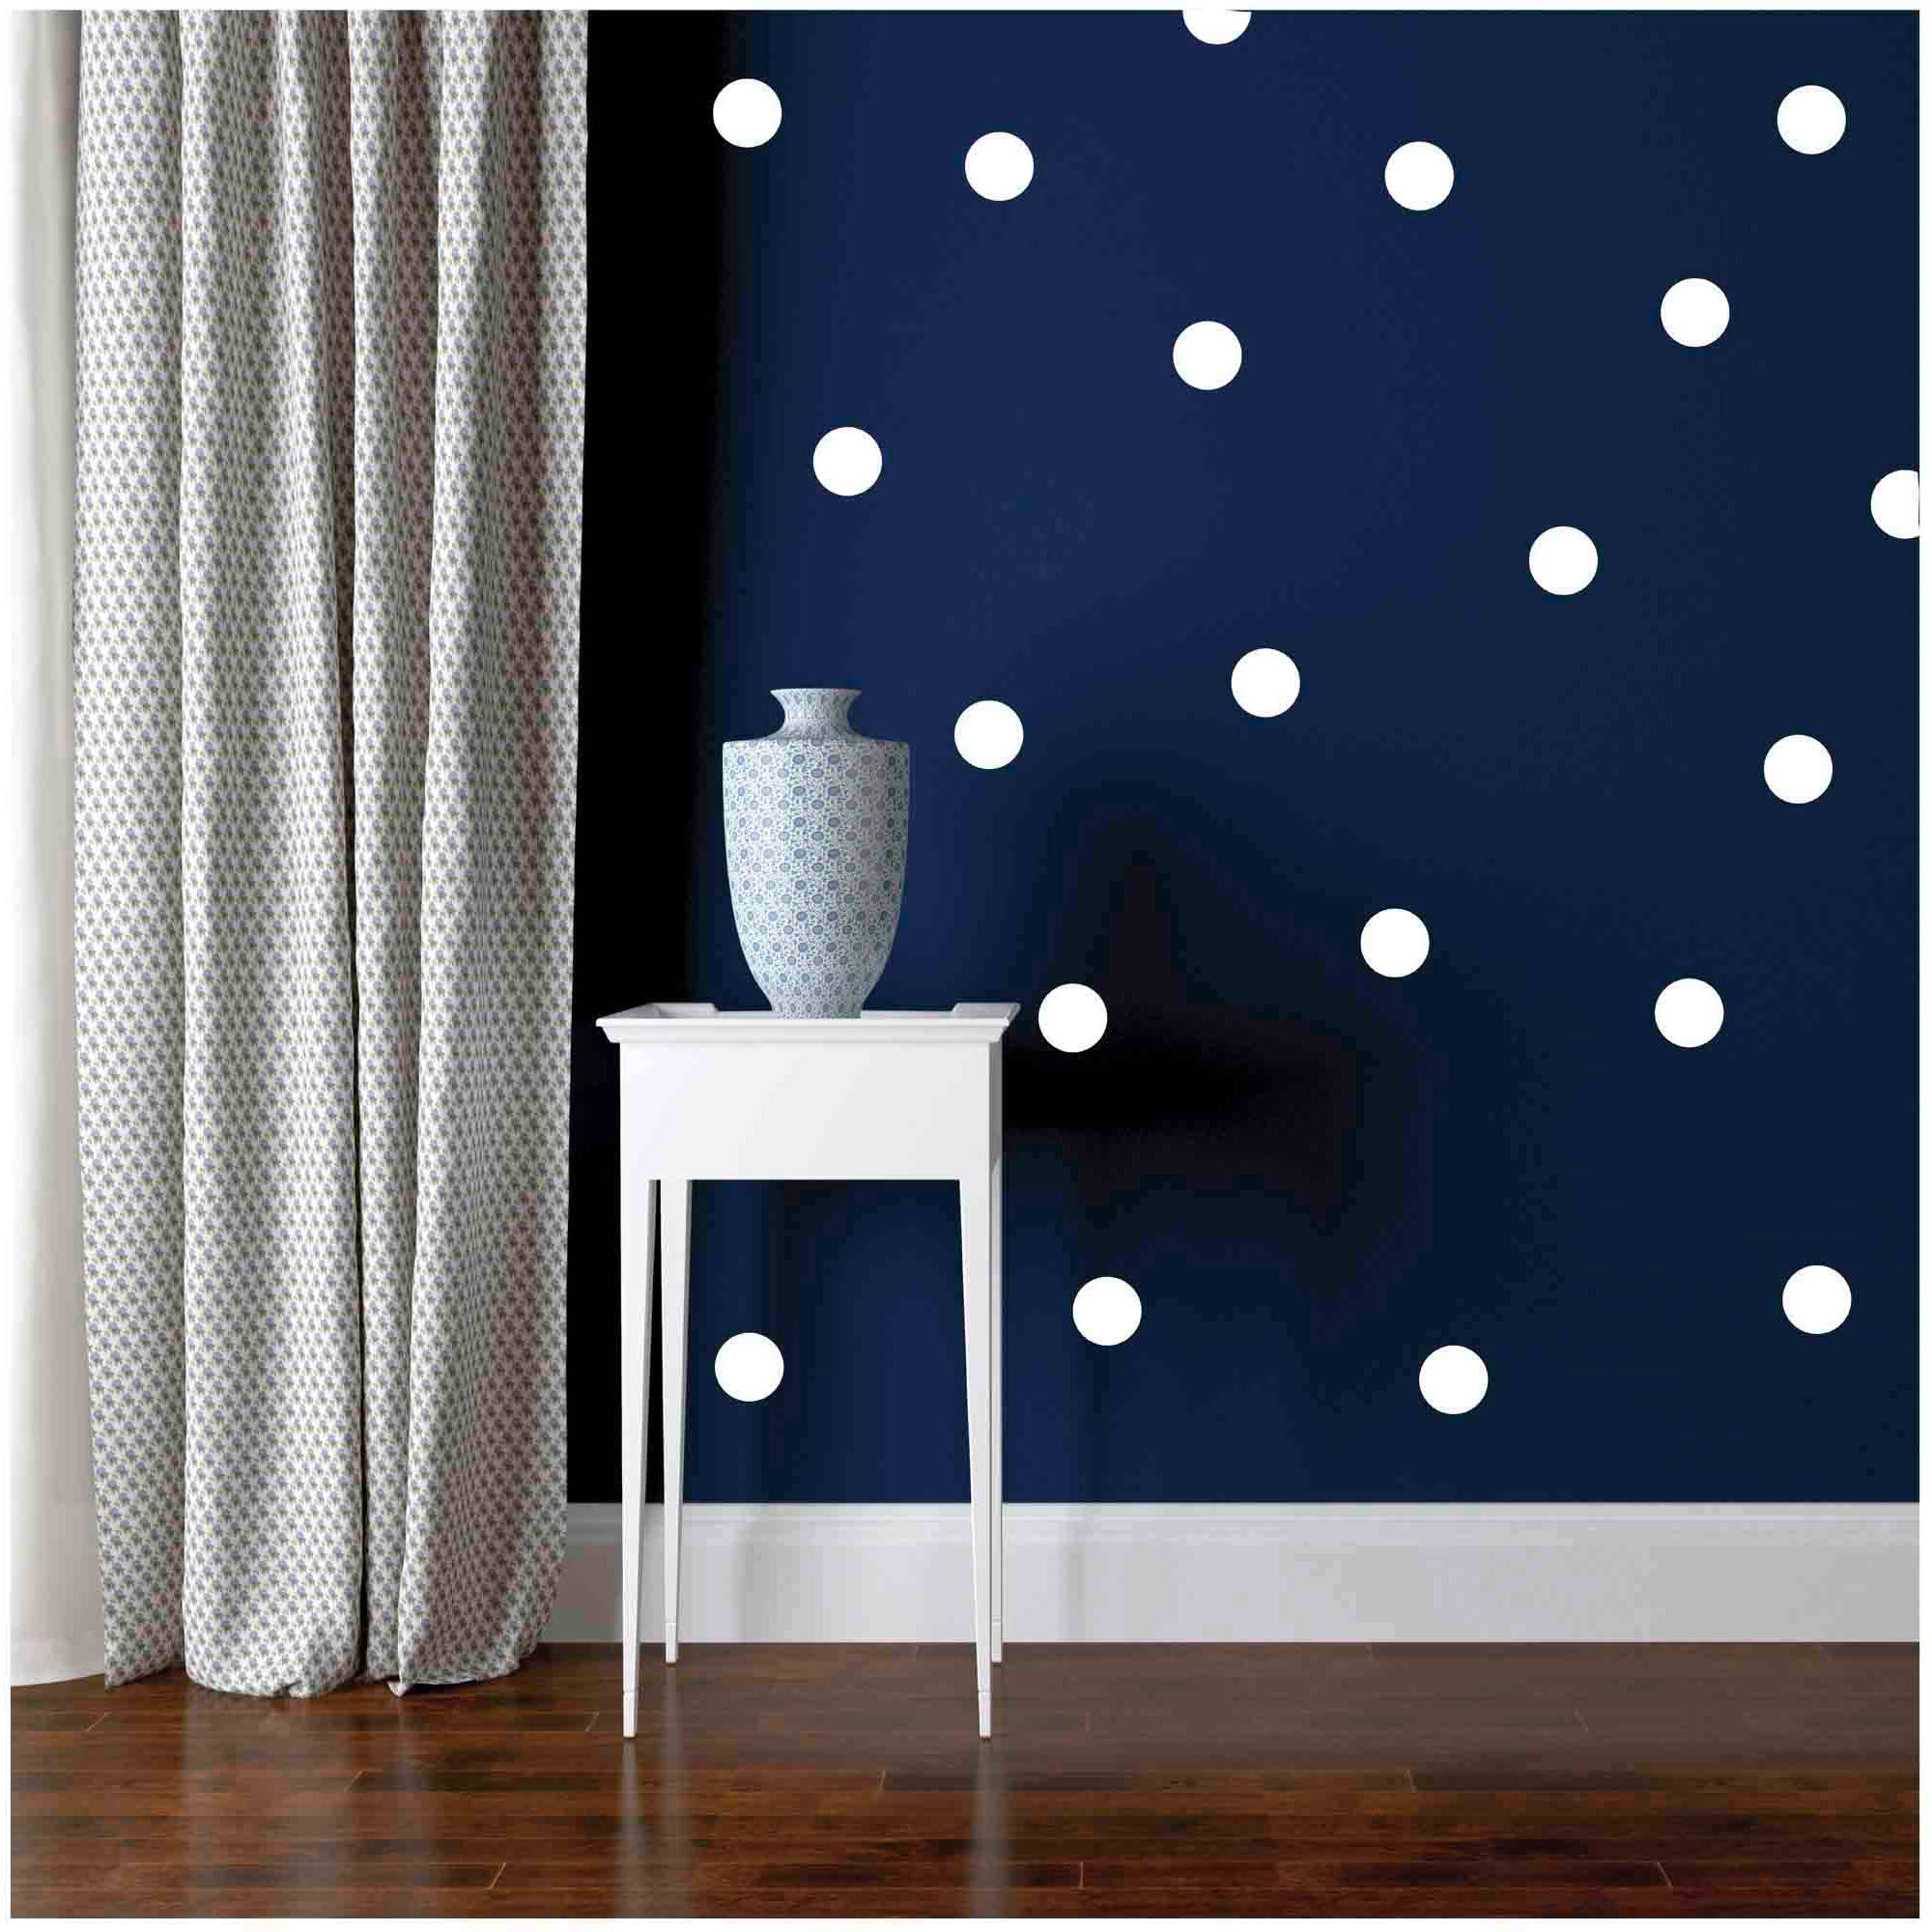 Owl Hills Polka Dot Wall Stickers, 2.5""